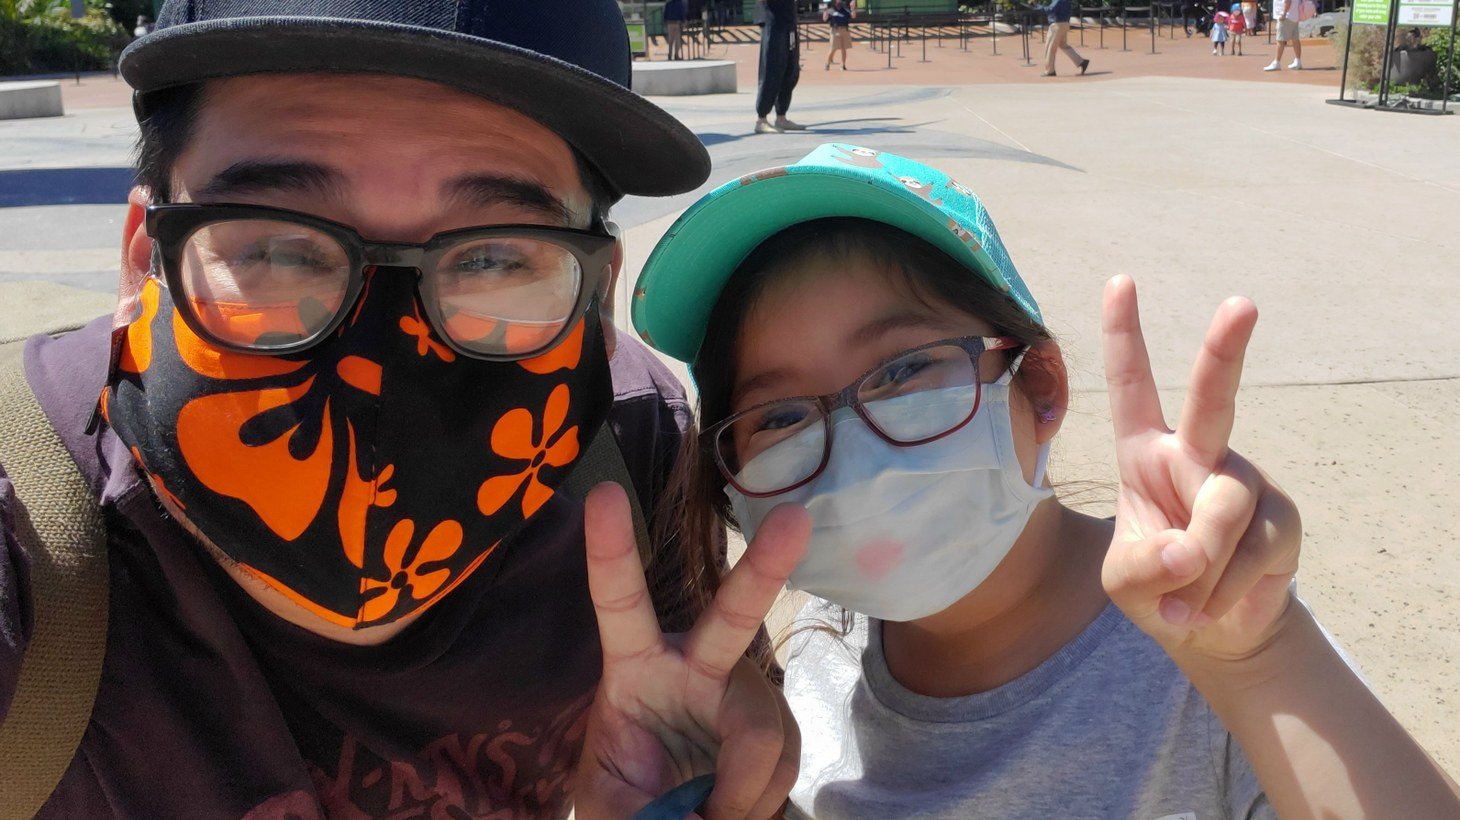 Joel Rodriguez and his daughter, Brooklyn Garcia, drove from Ridgecrest to San Diego to go to the zoo. Rodriquez got vaccinated in February, and this was their first road trip since the pandemic began.